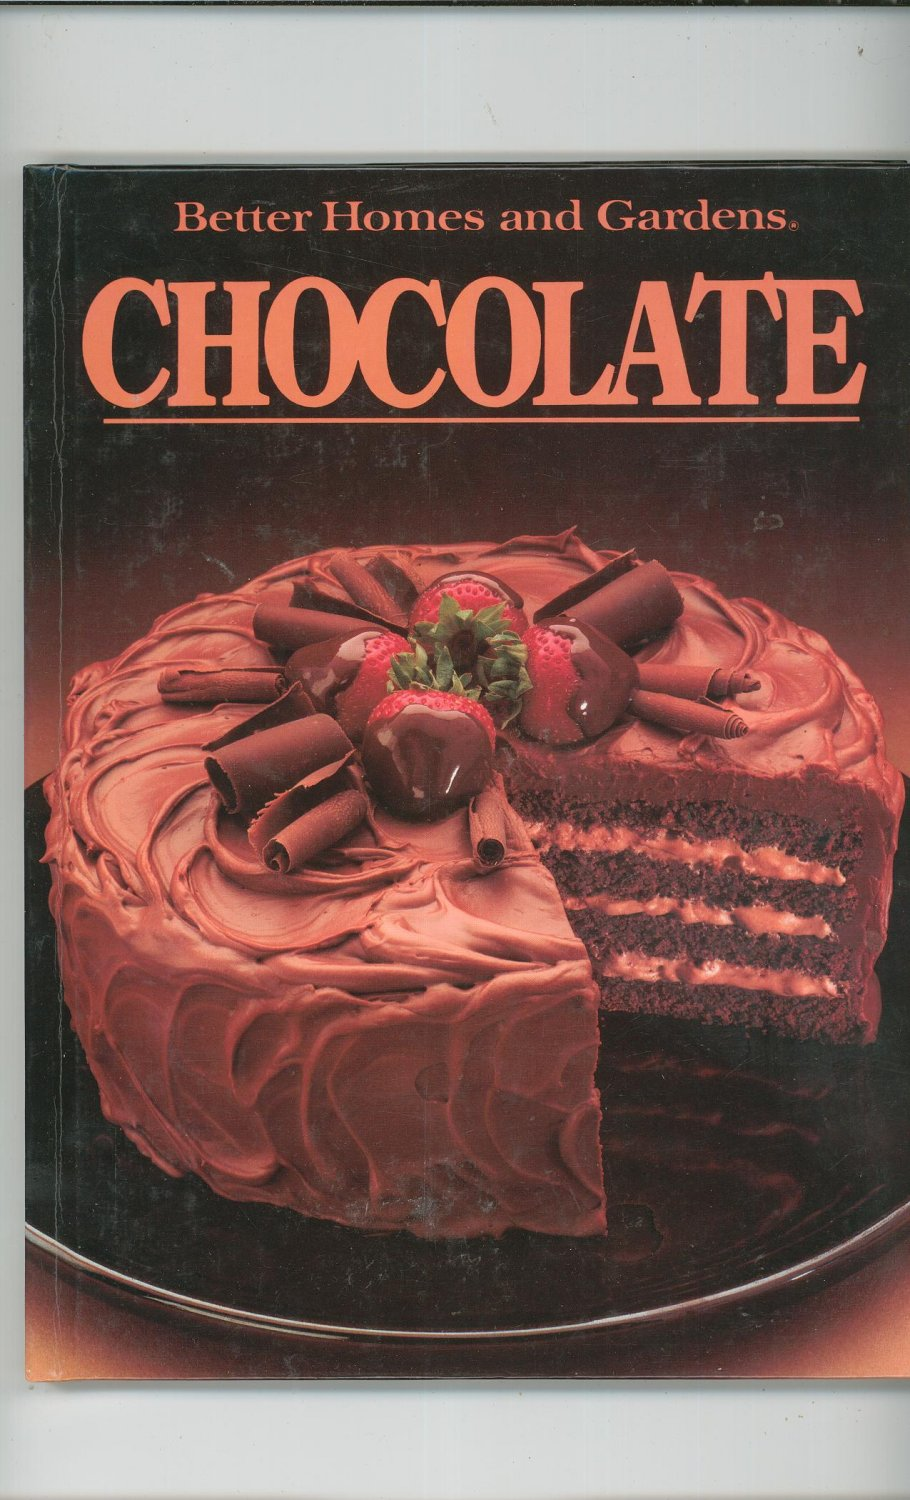 Better Homes And Gardens Chocolate Cookbook 0696013053